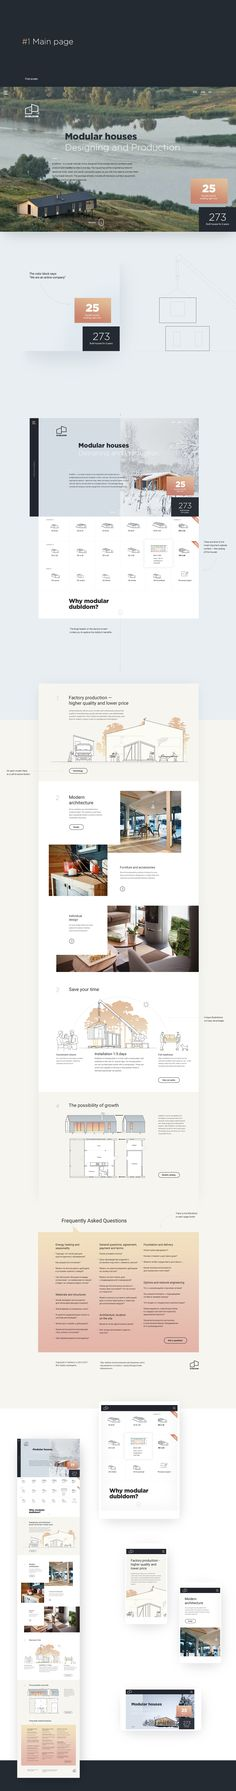 Modular frame houses website concept.